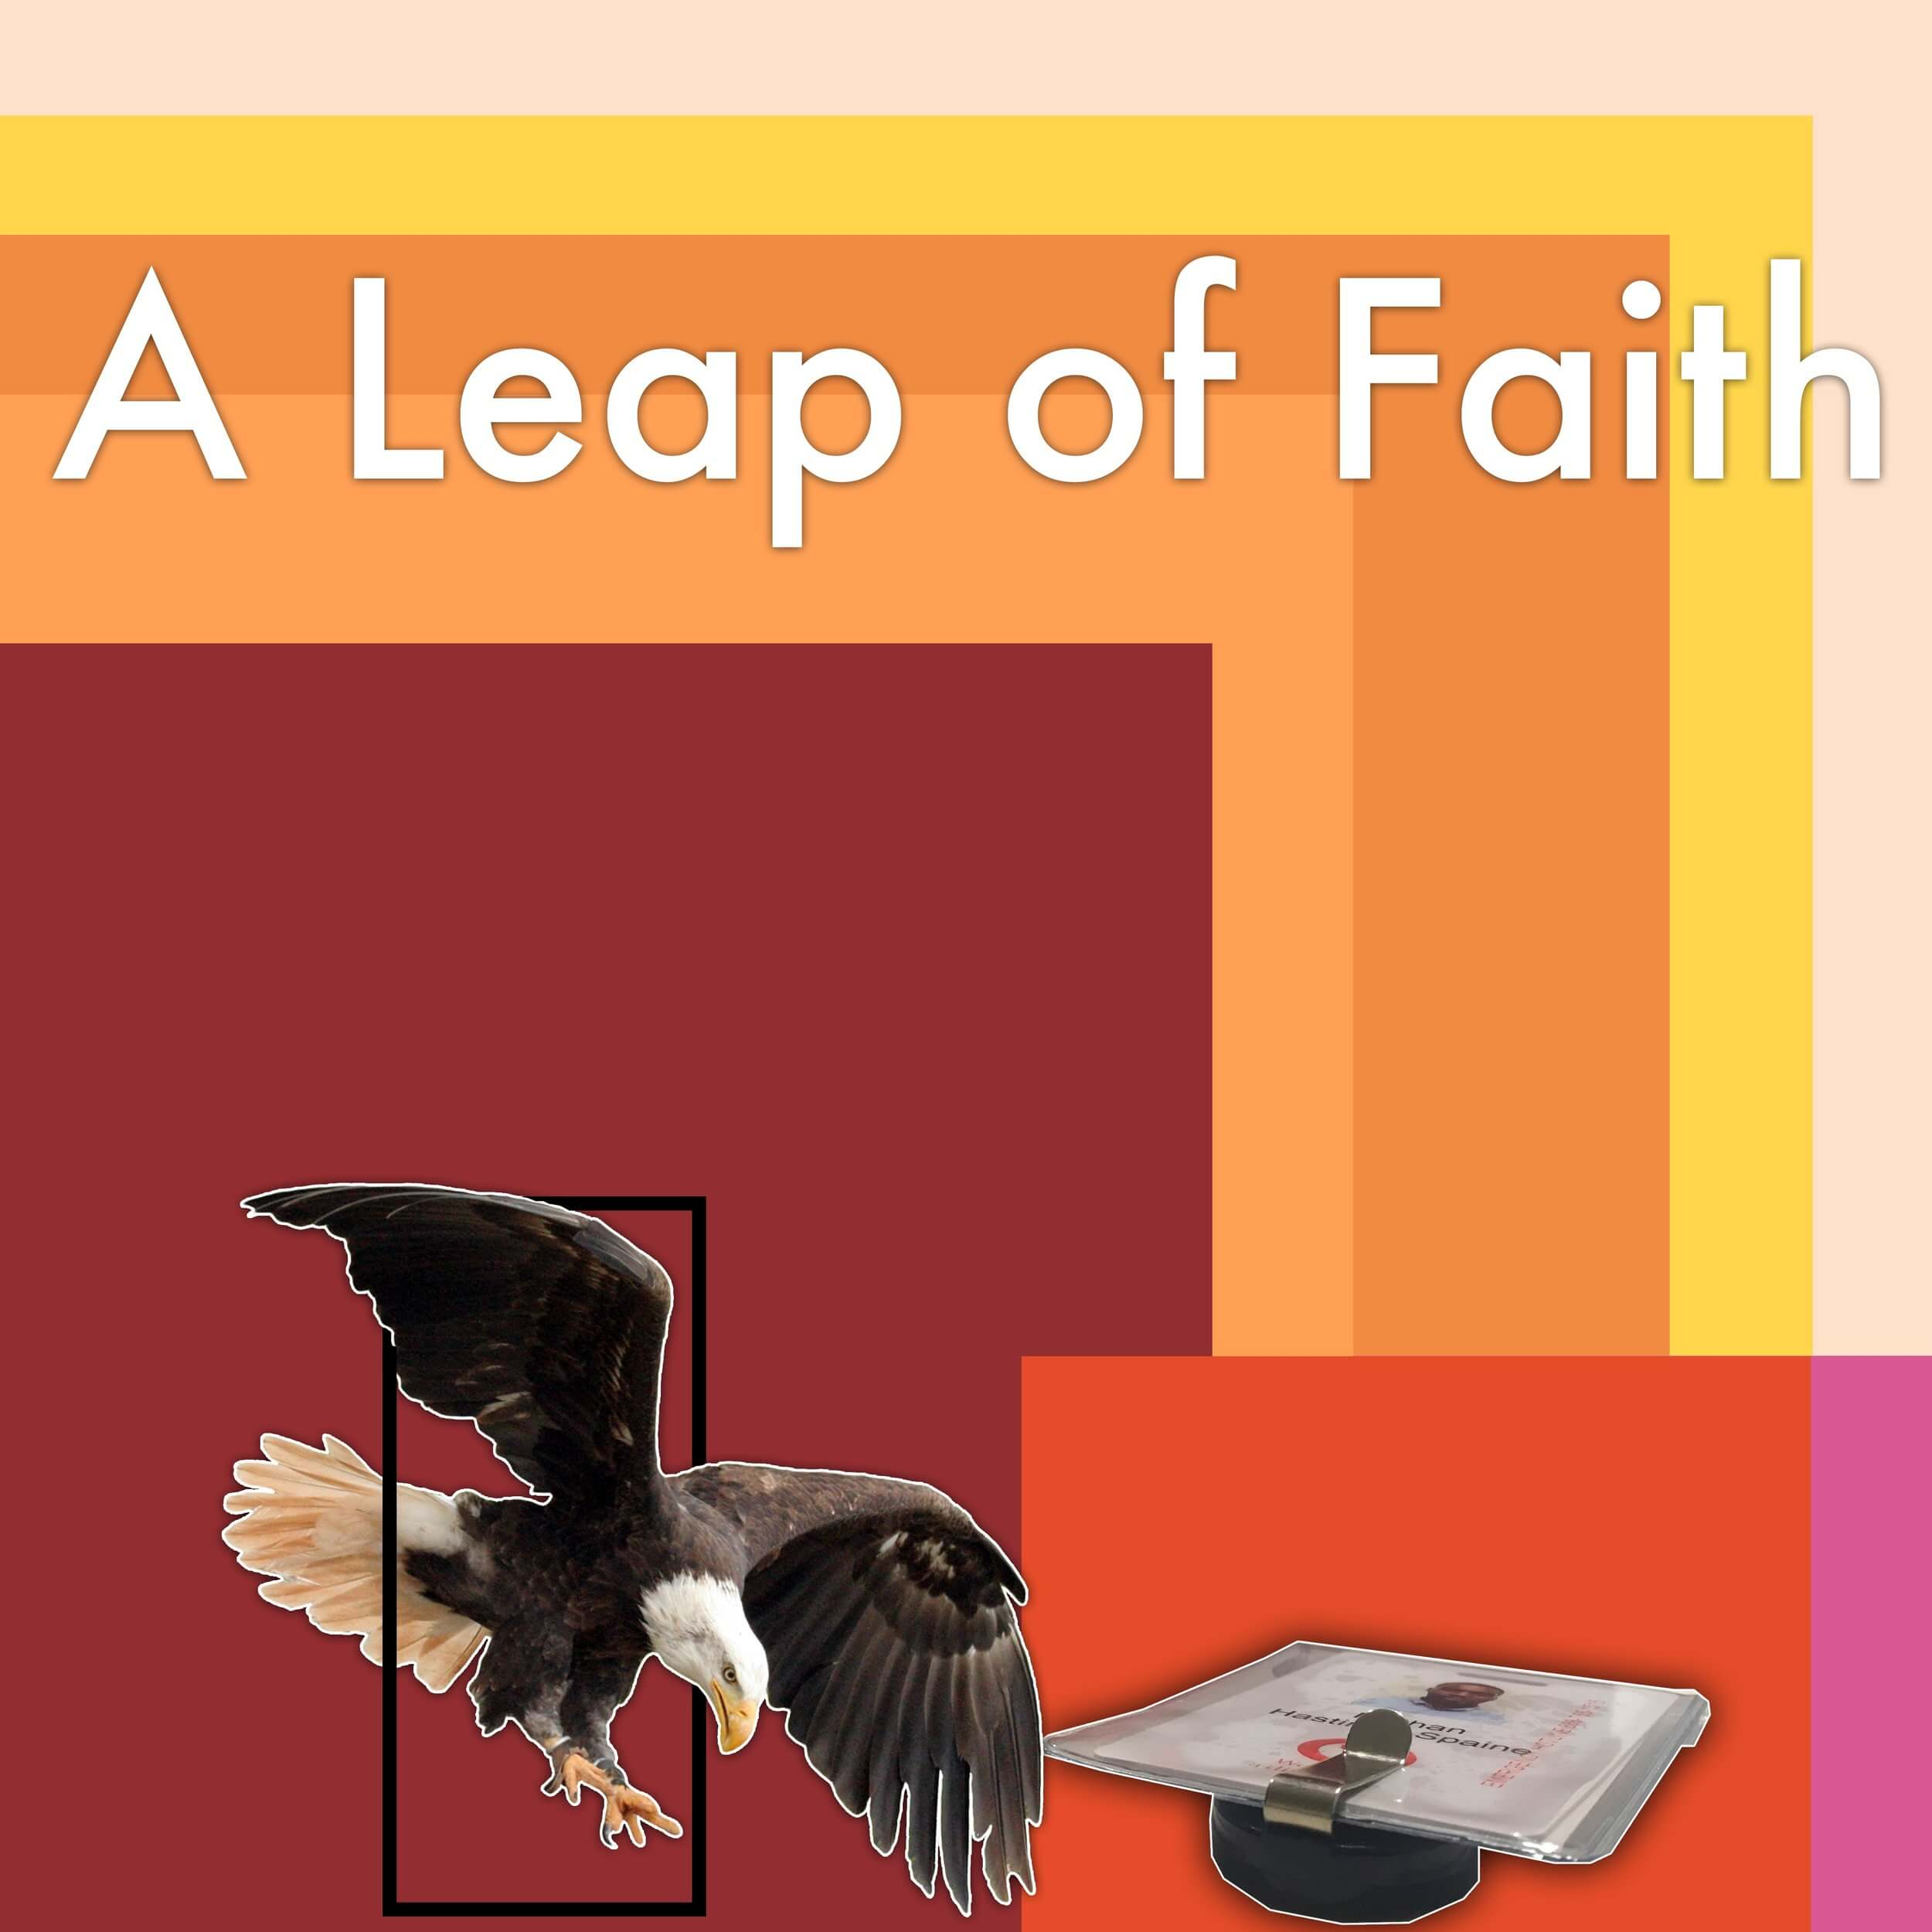 I left my corporate job in New York City and moved back home to DC to be a full-time entrepreneur. You call it a leap of faith. I call it my story.